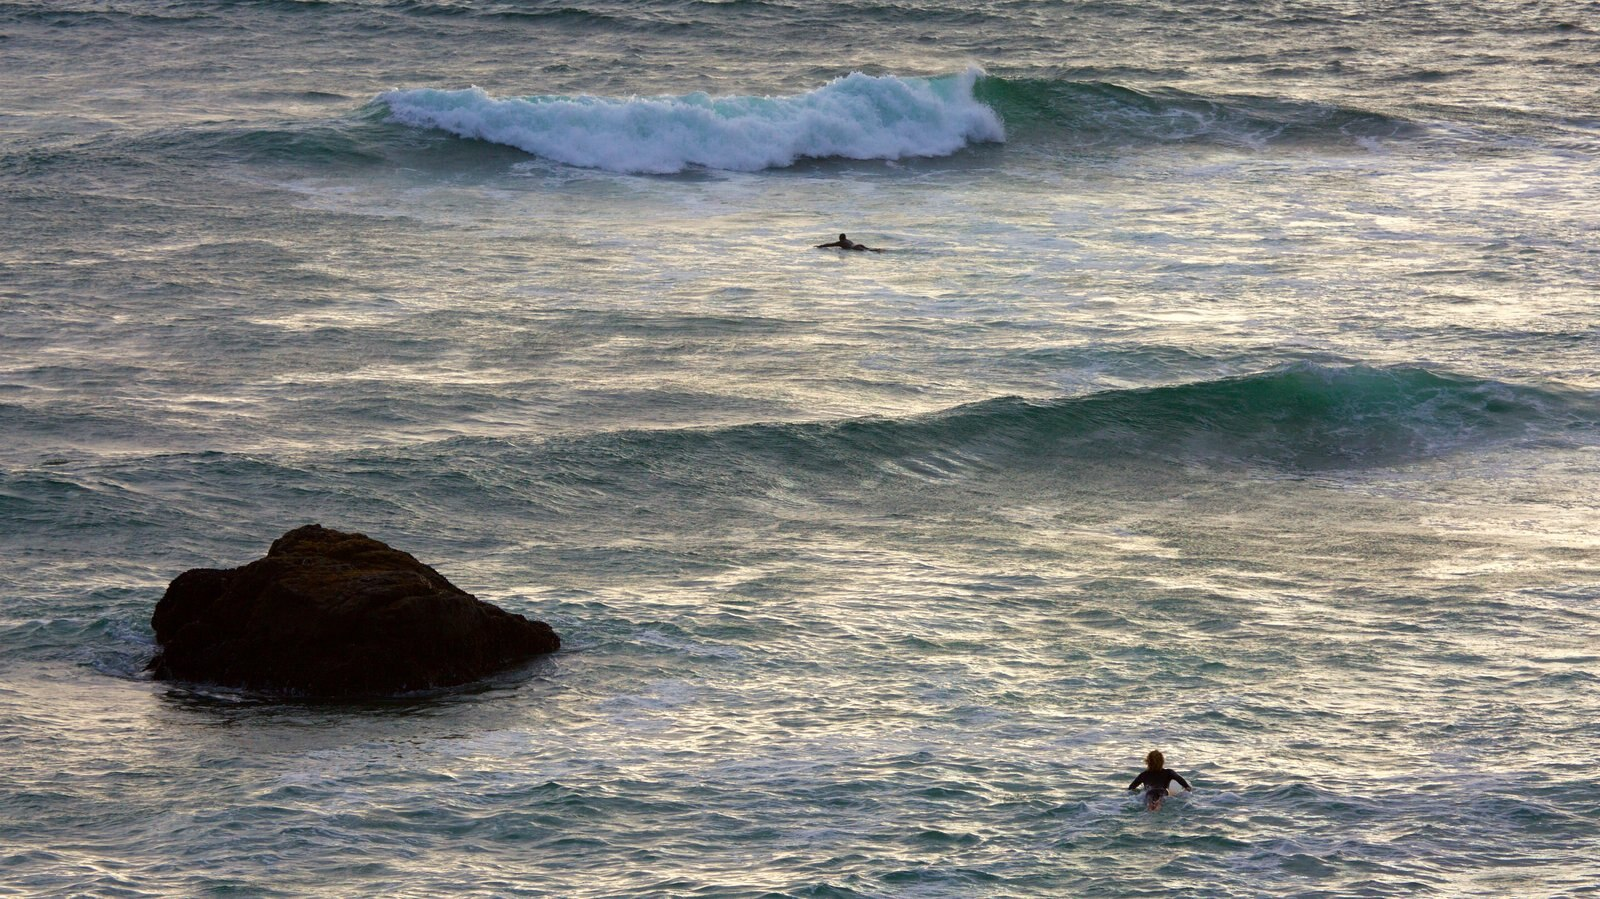 Sonoma Valley featuring general coastal views, surfing and waves